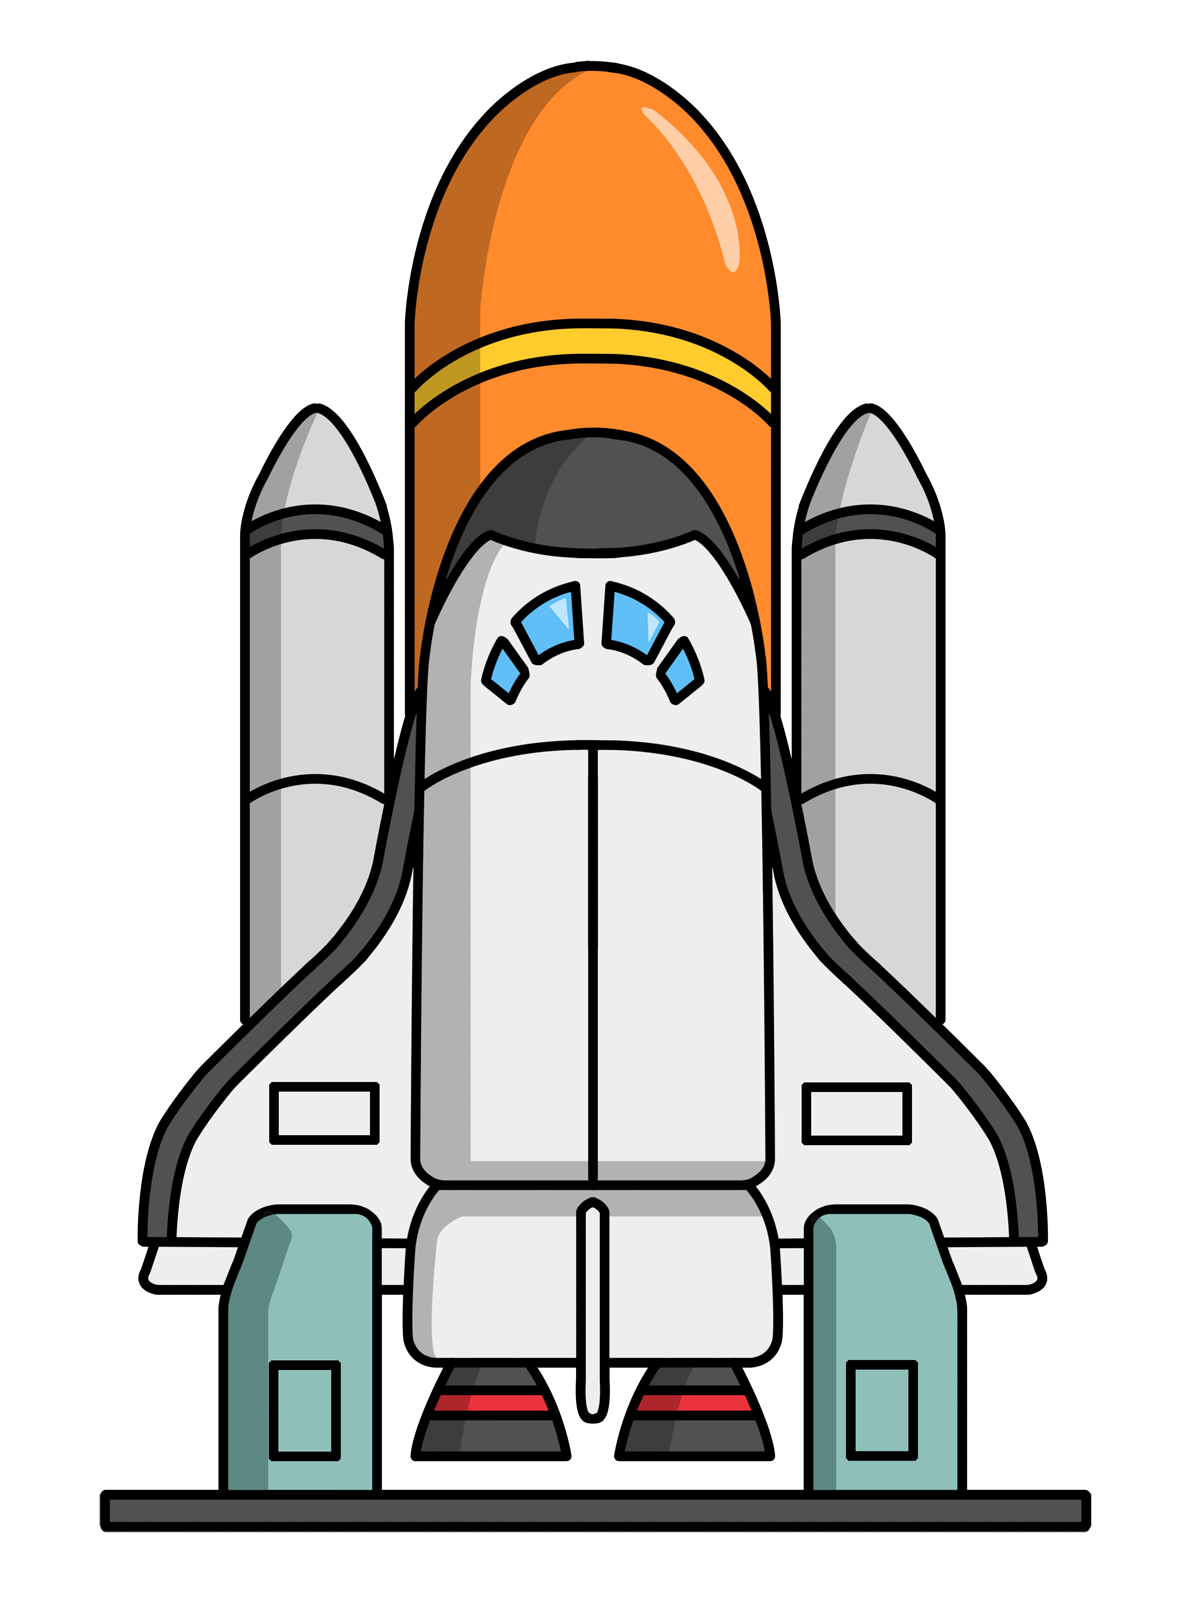 Shuttle clipart simple. Free domain clip art